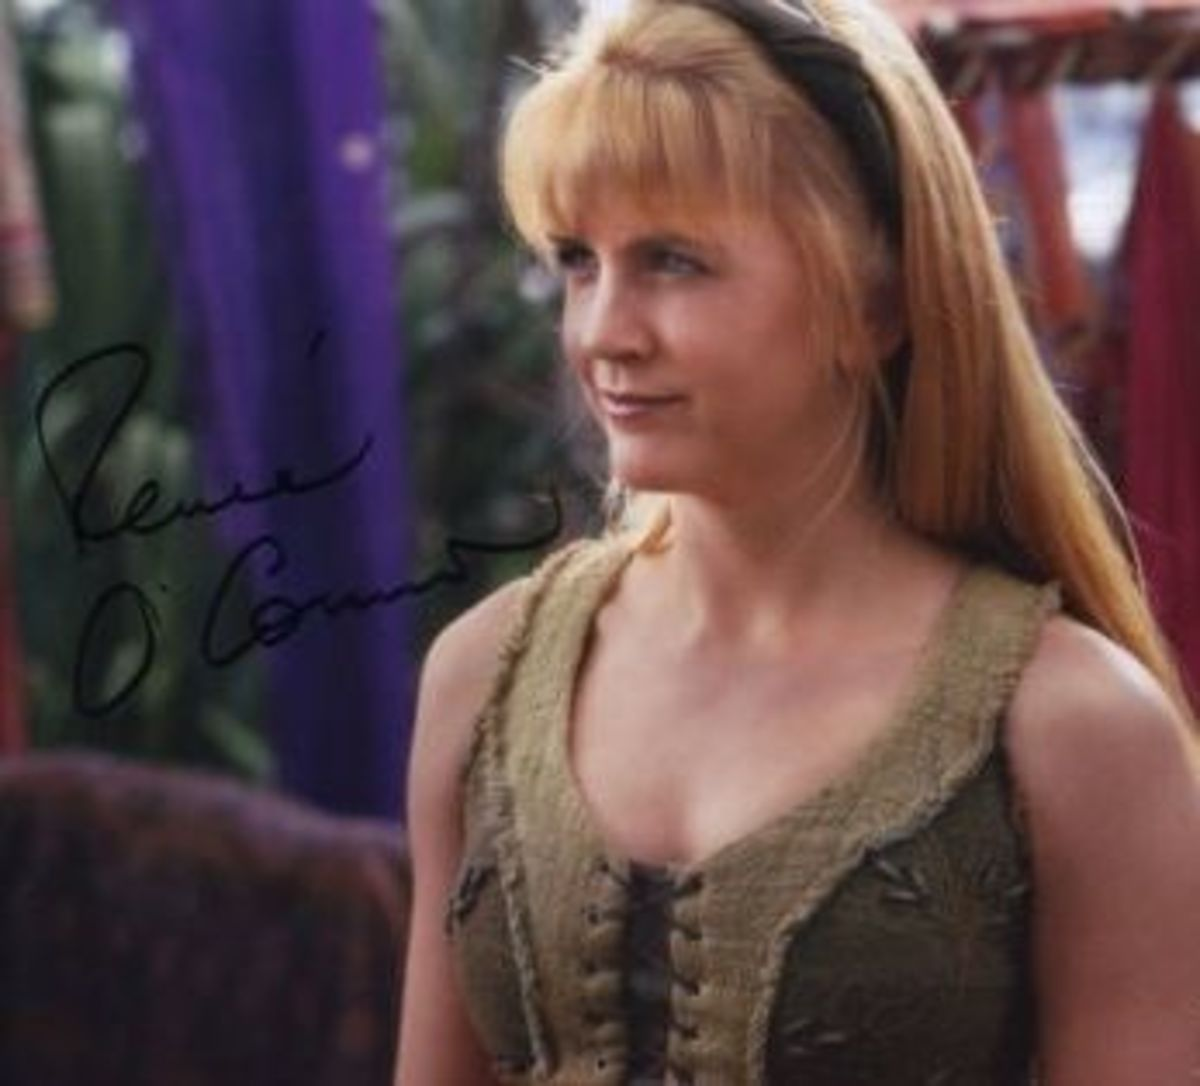 Renee O'Connor Autograph from Personal Collection. Buy official photos from Creation